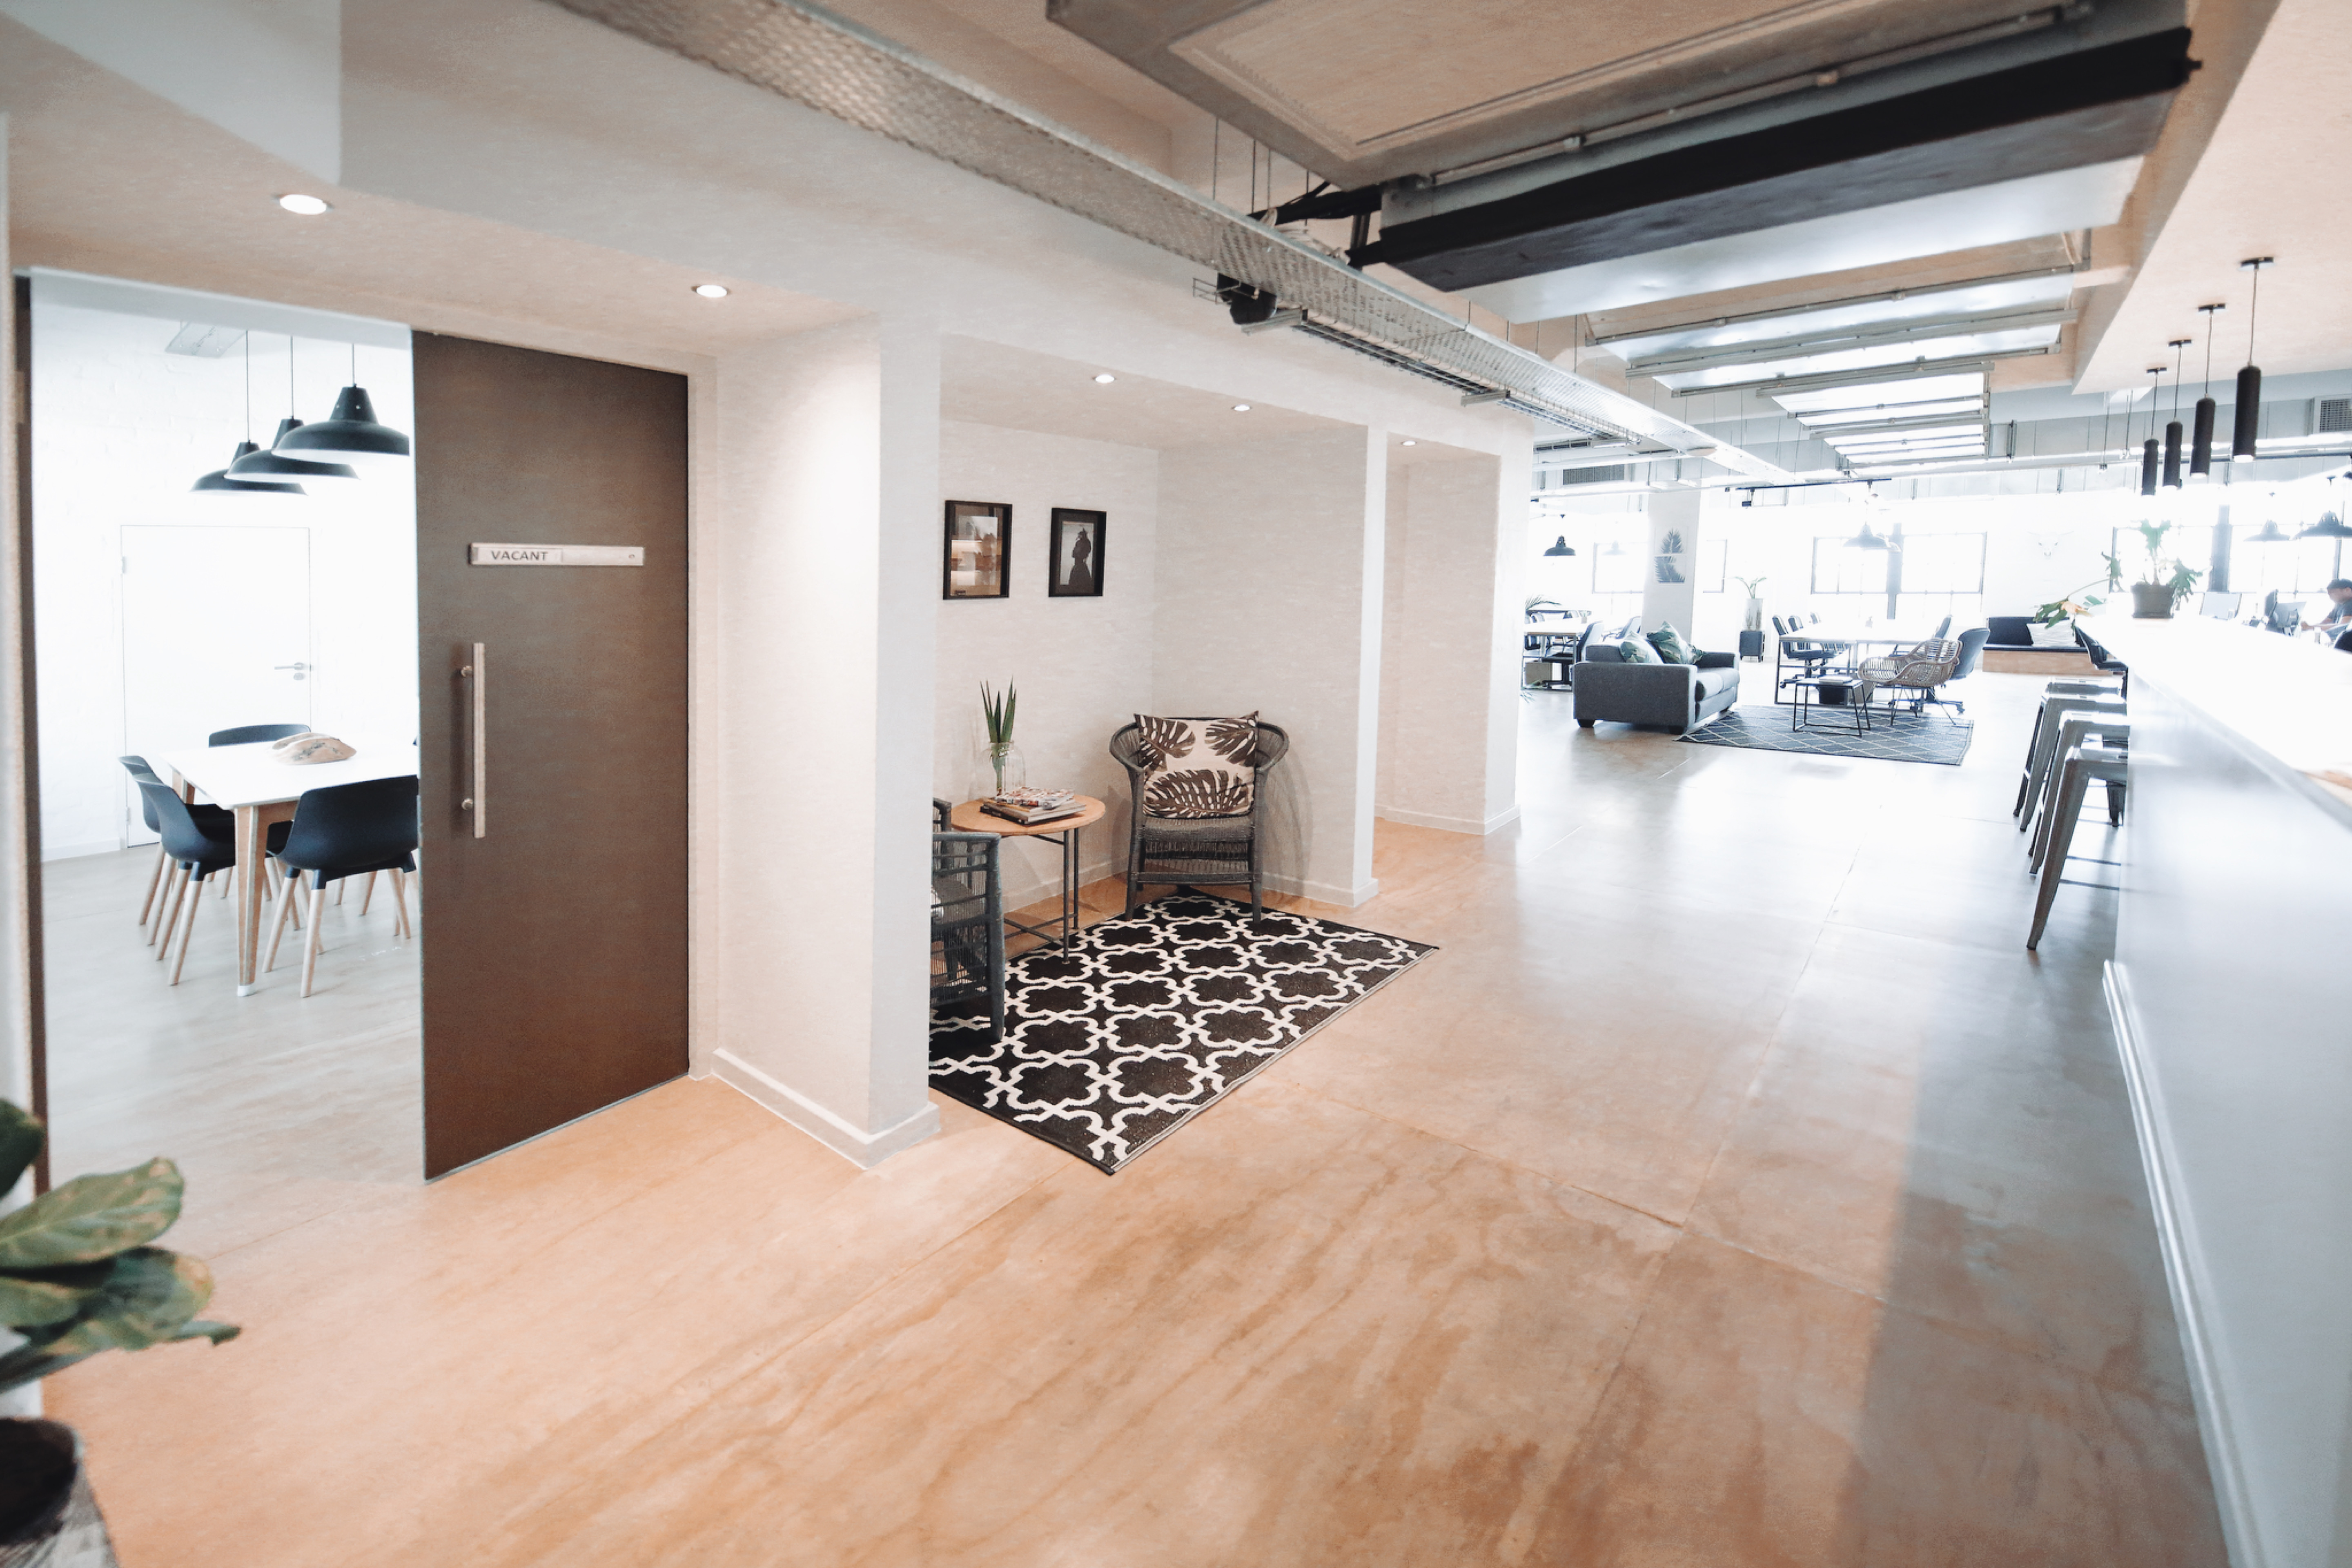 Co-working space entrance hall with reception area.